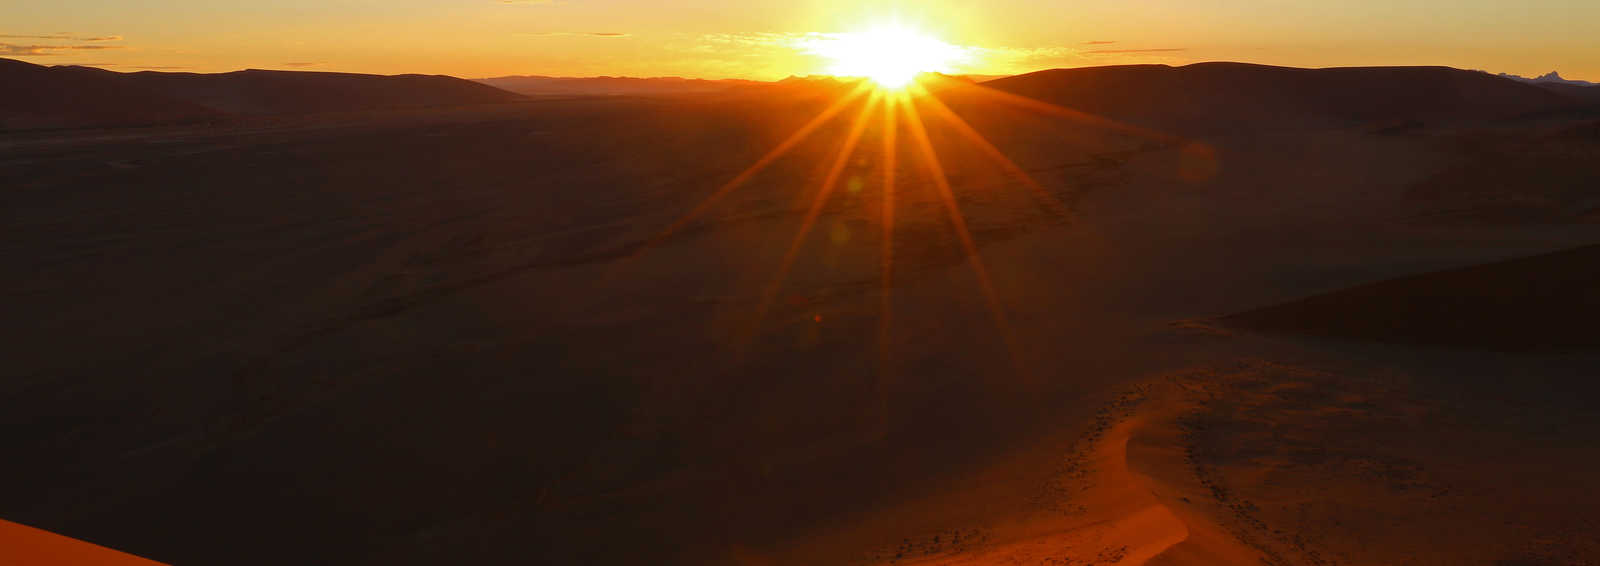 Sunset at the Namib Desert